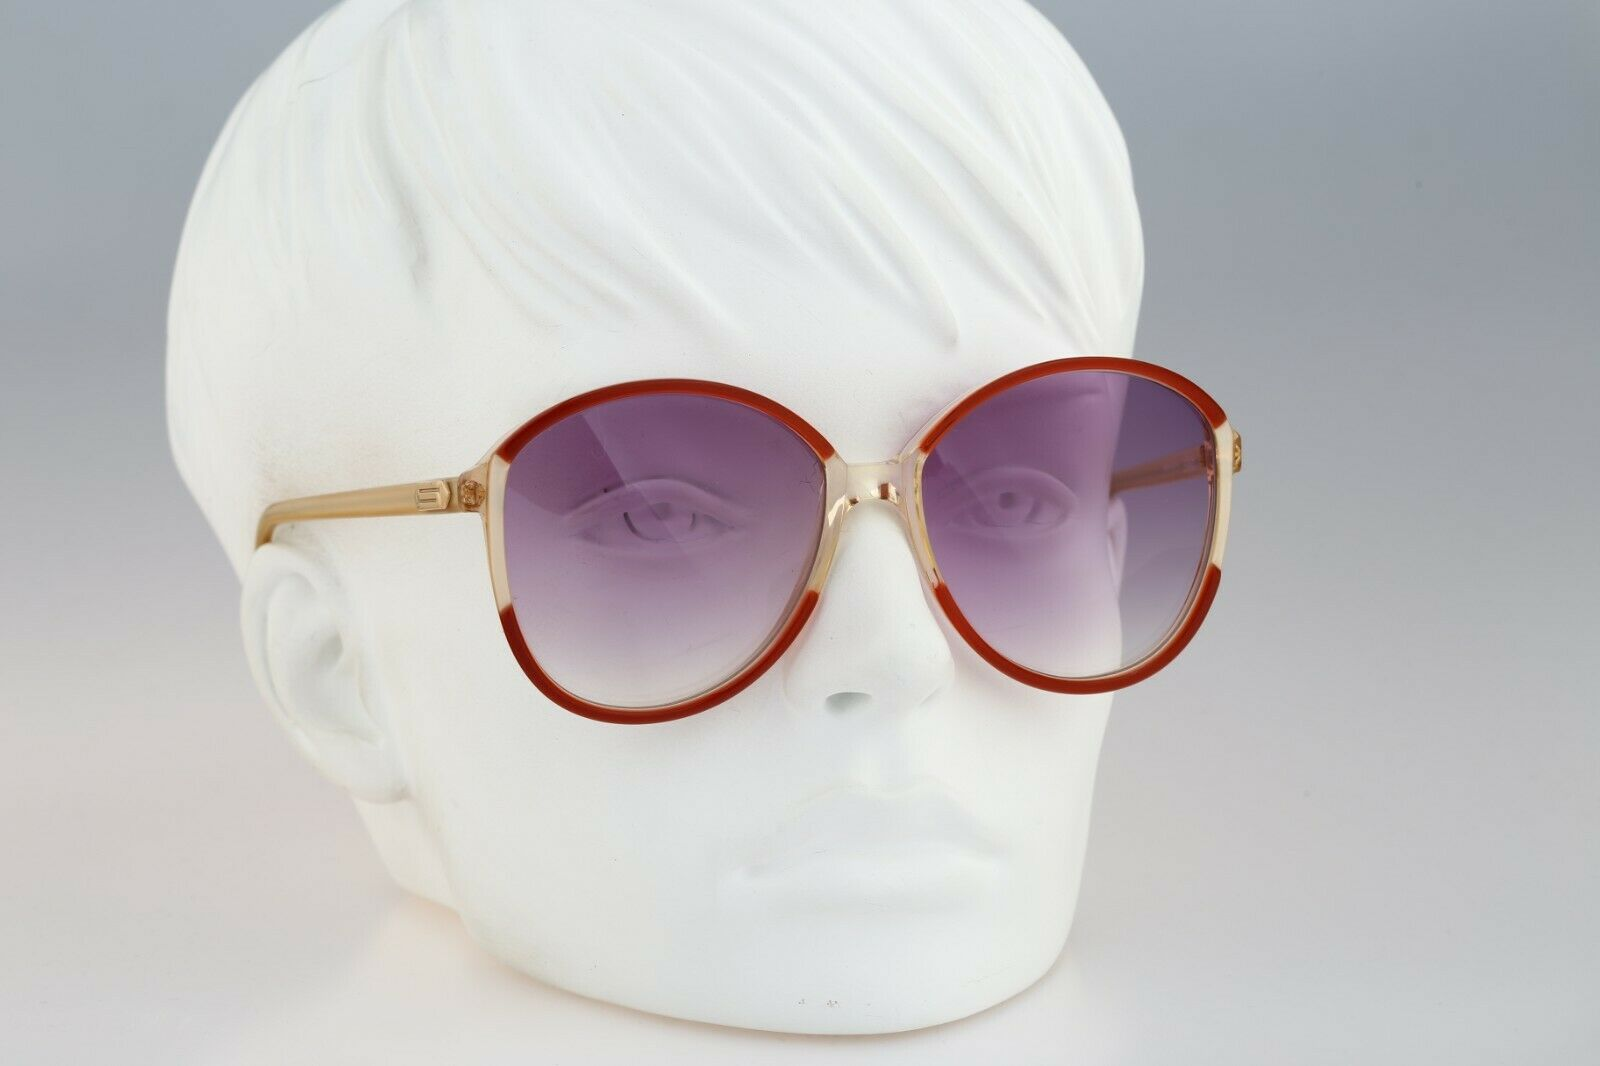 Silhouette M 1126 20 C 2713, Vintage 70s red & cl… - image 2